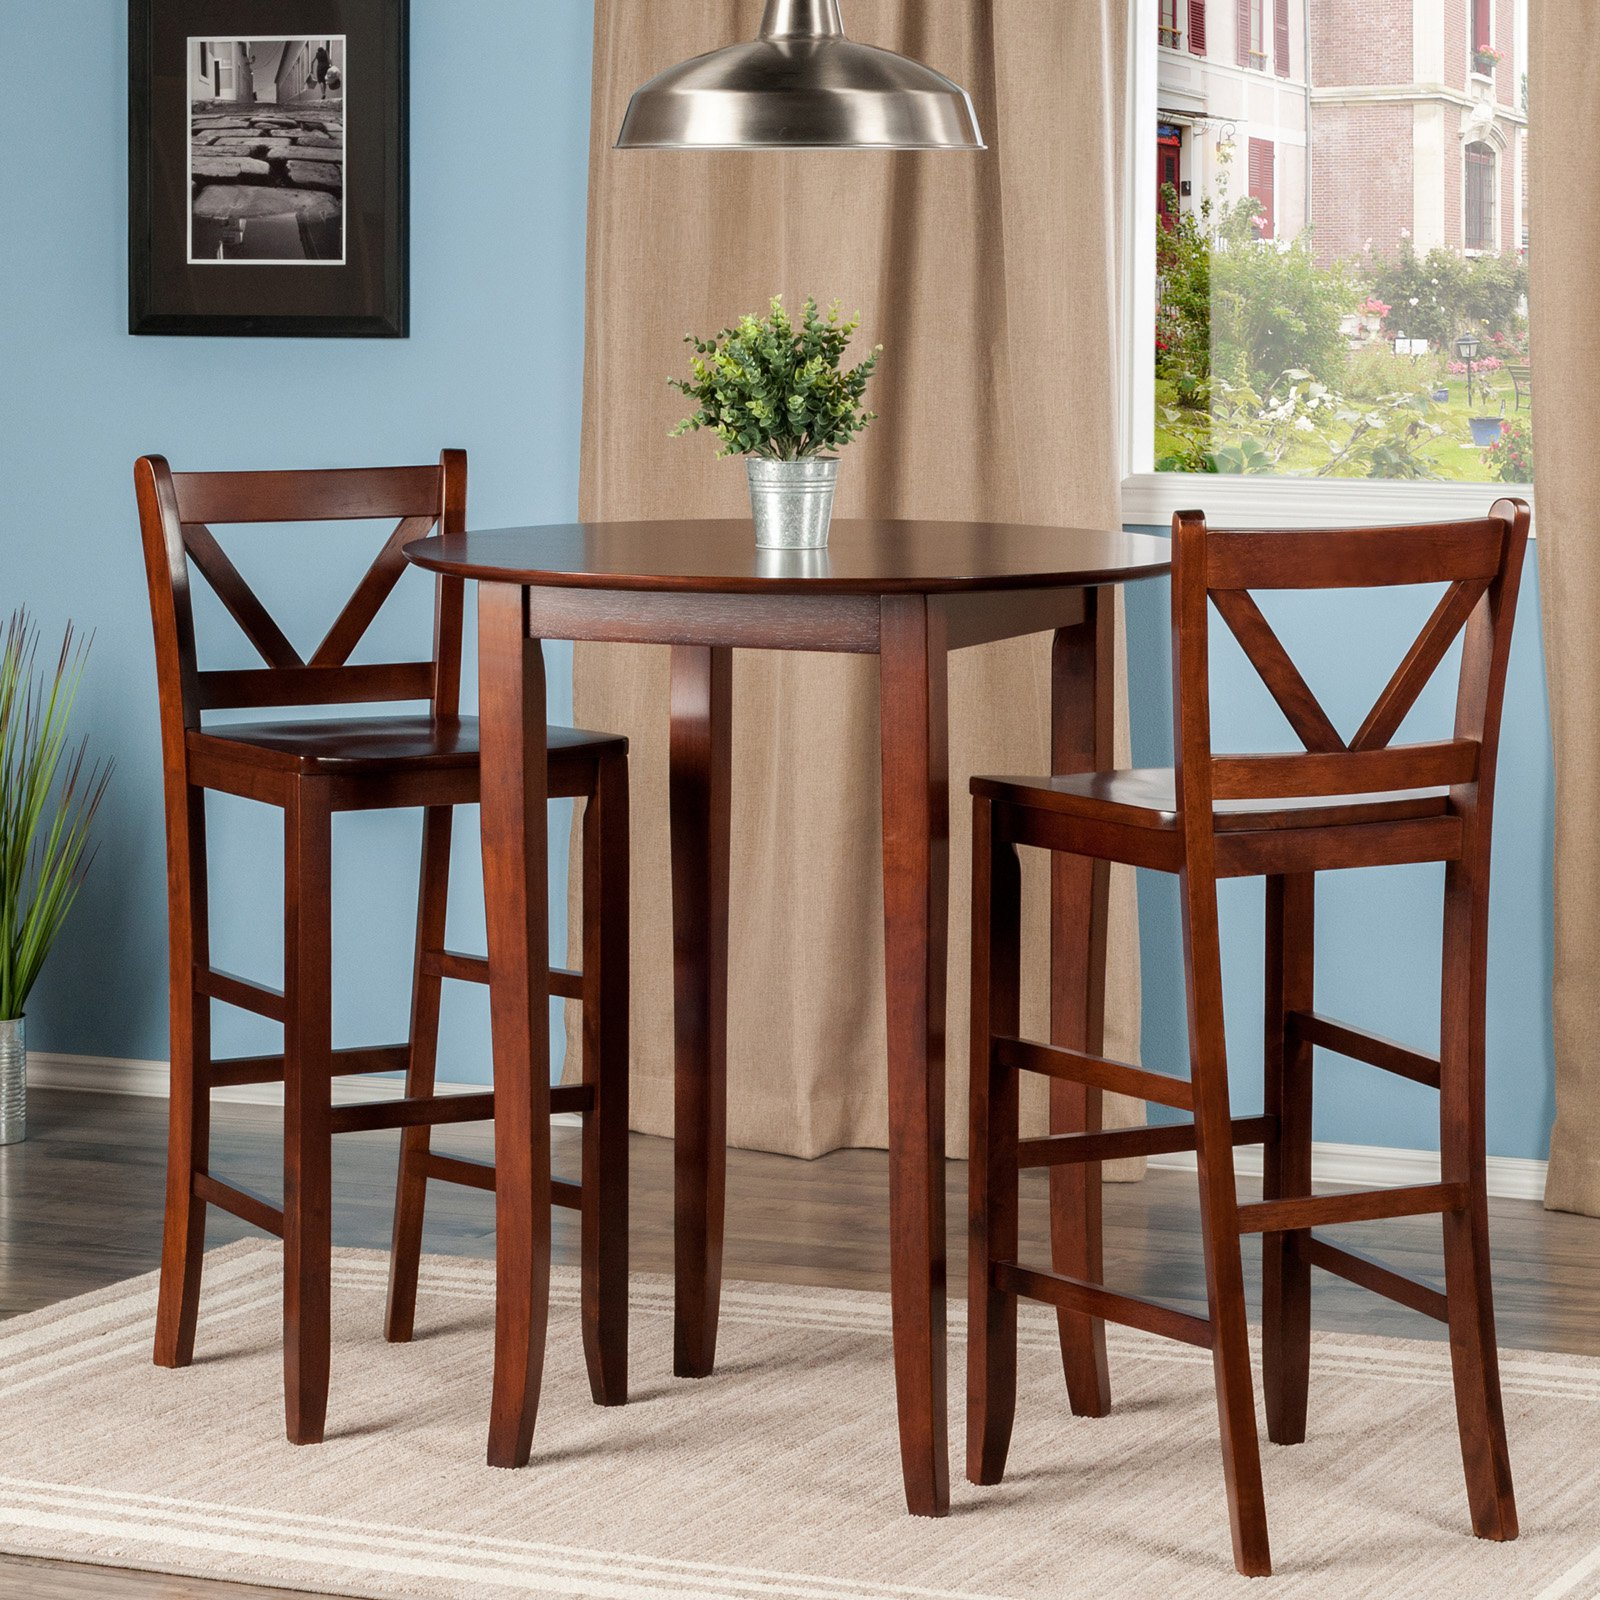 Winsome Trading Fiona 3 Piece Counter Height Round Dining Table Set Intended For Most Recently Released Winsome 3 Piece Counter Height Dining Sets (View 17 of 20)